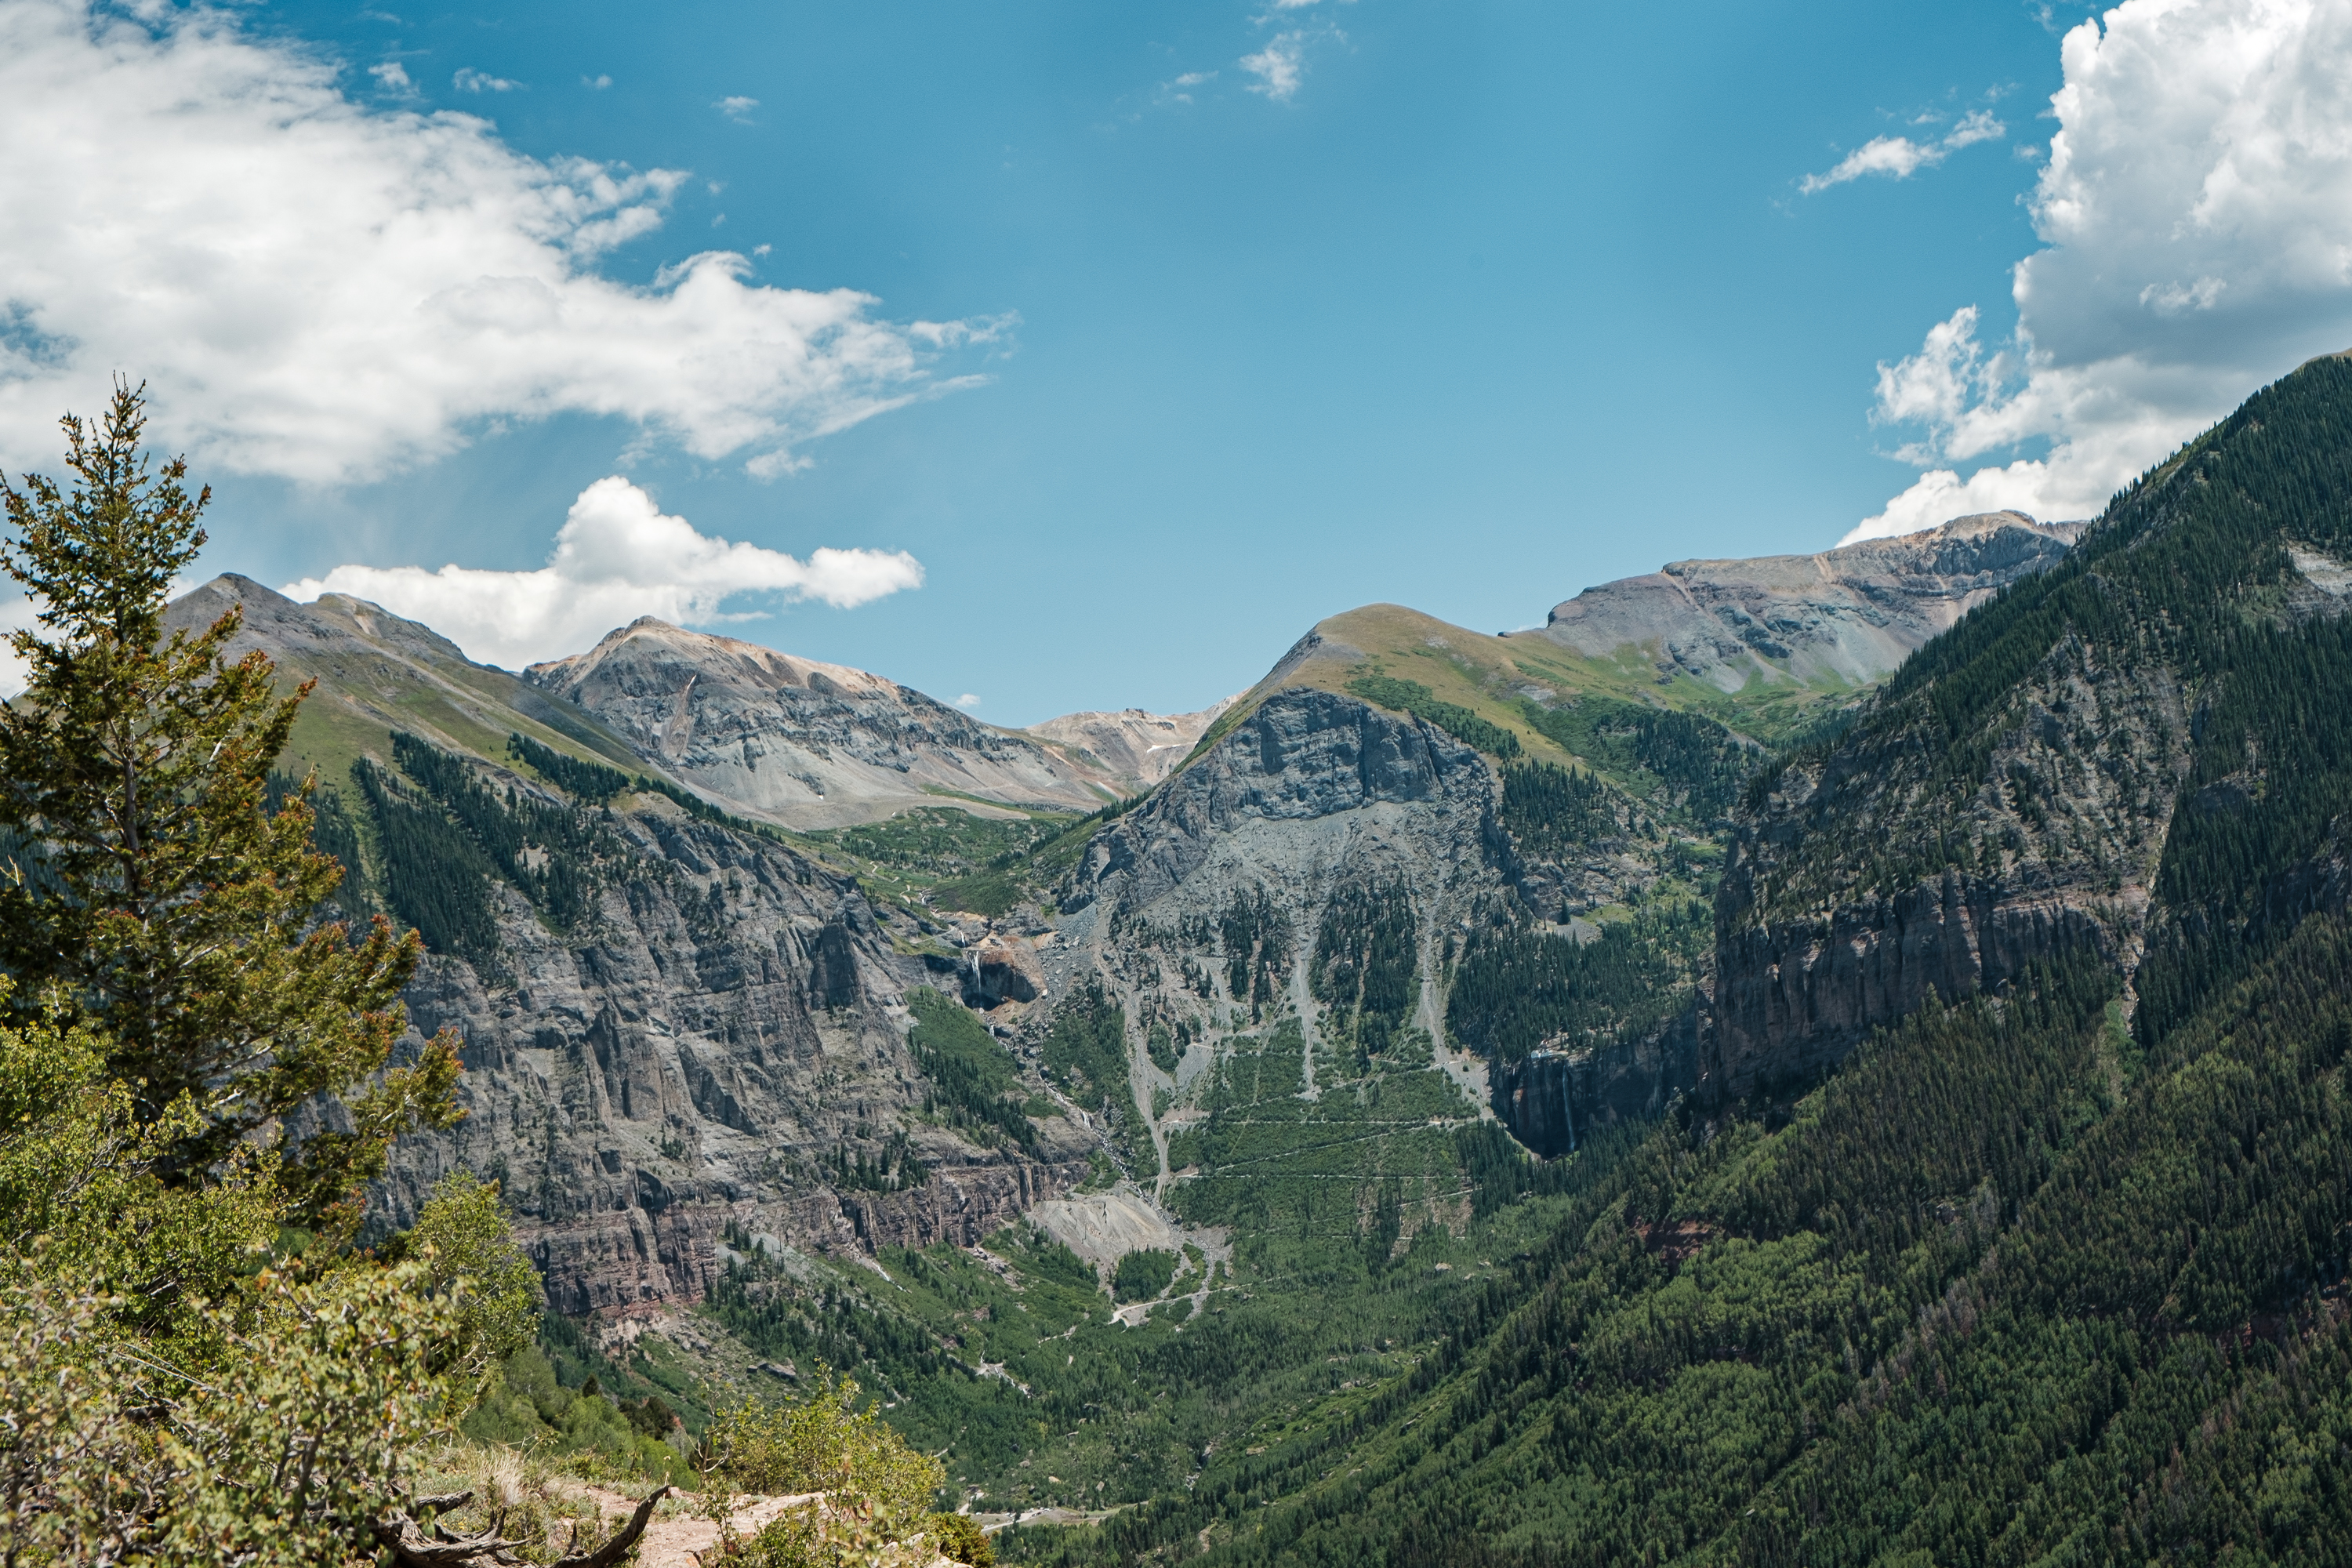 The road down Black Bear Pass is considered one of the most dangerous in North America